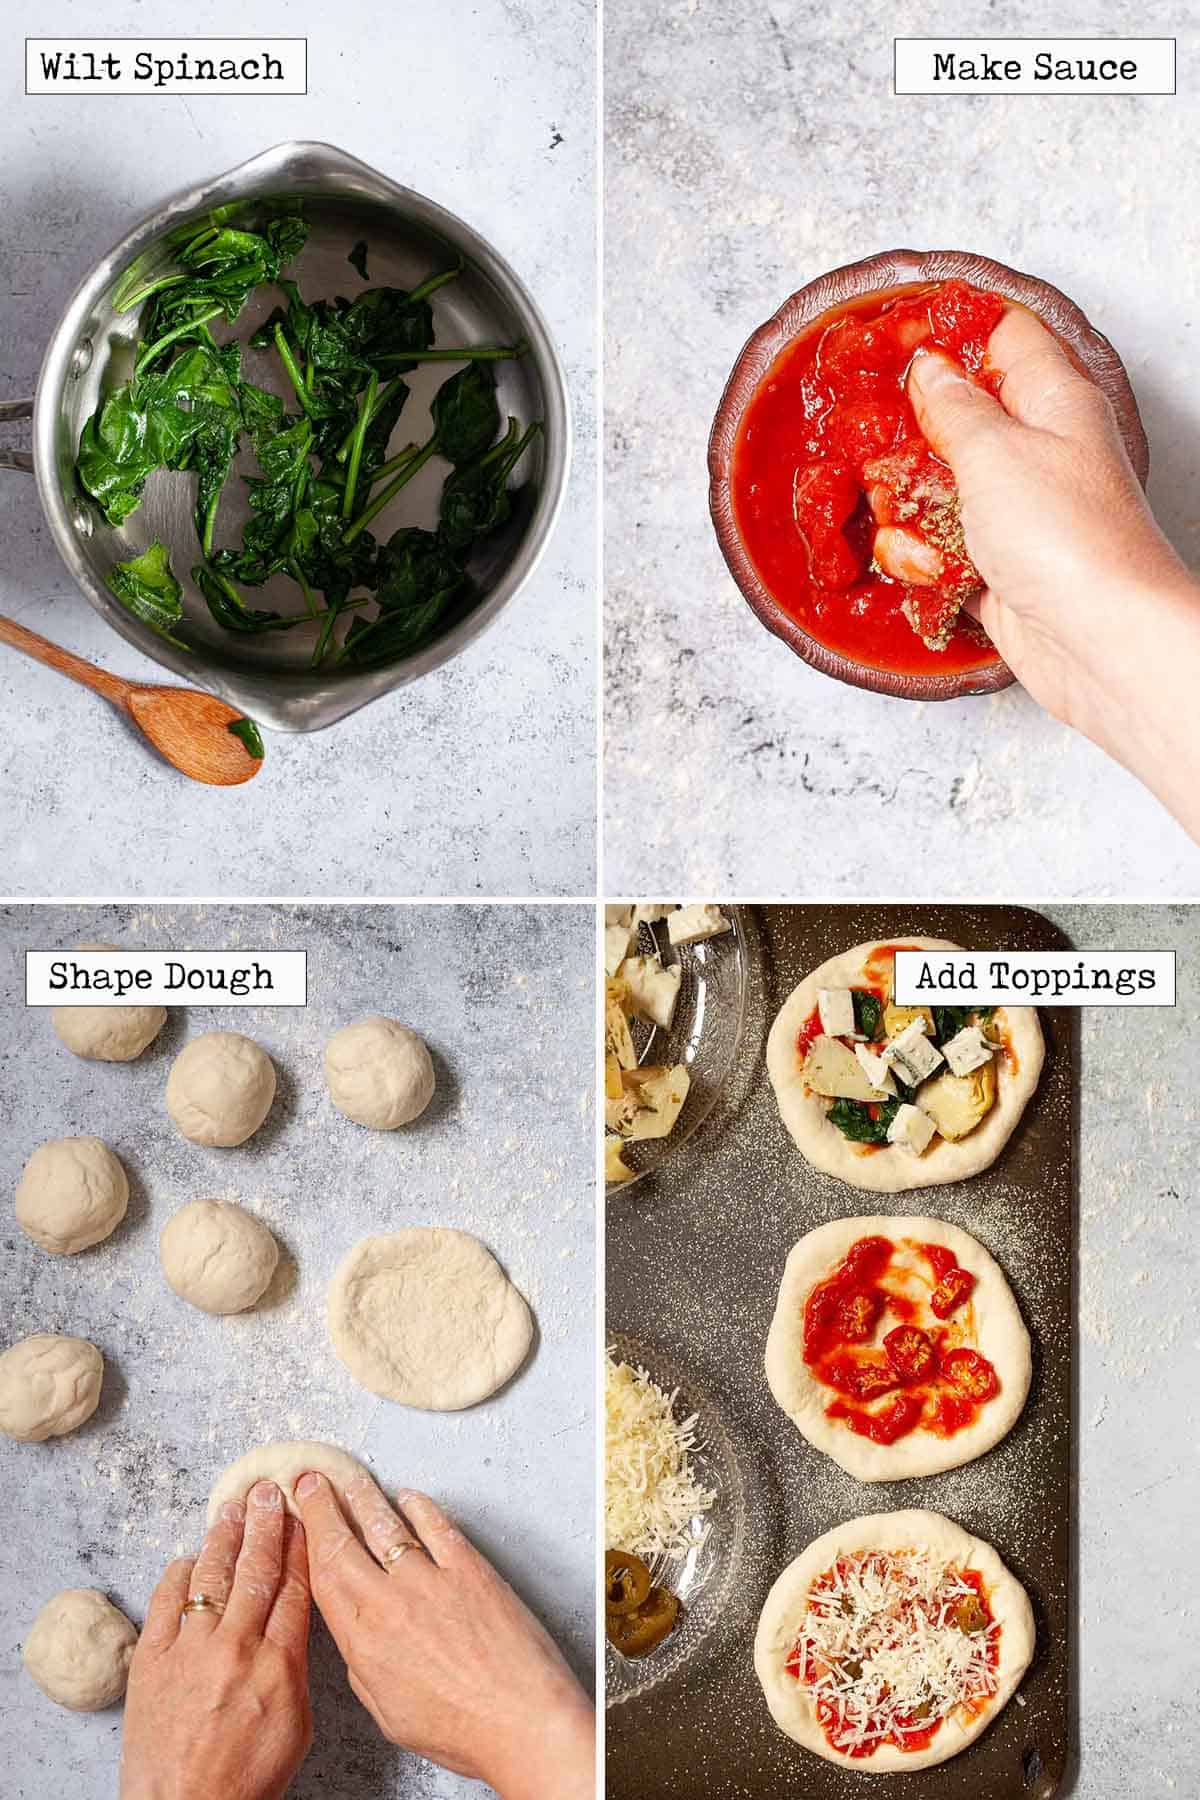 Collage of images showing toppings and pizzette being made